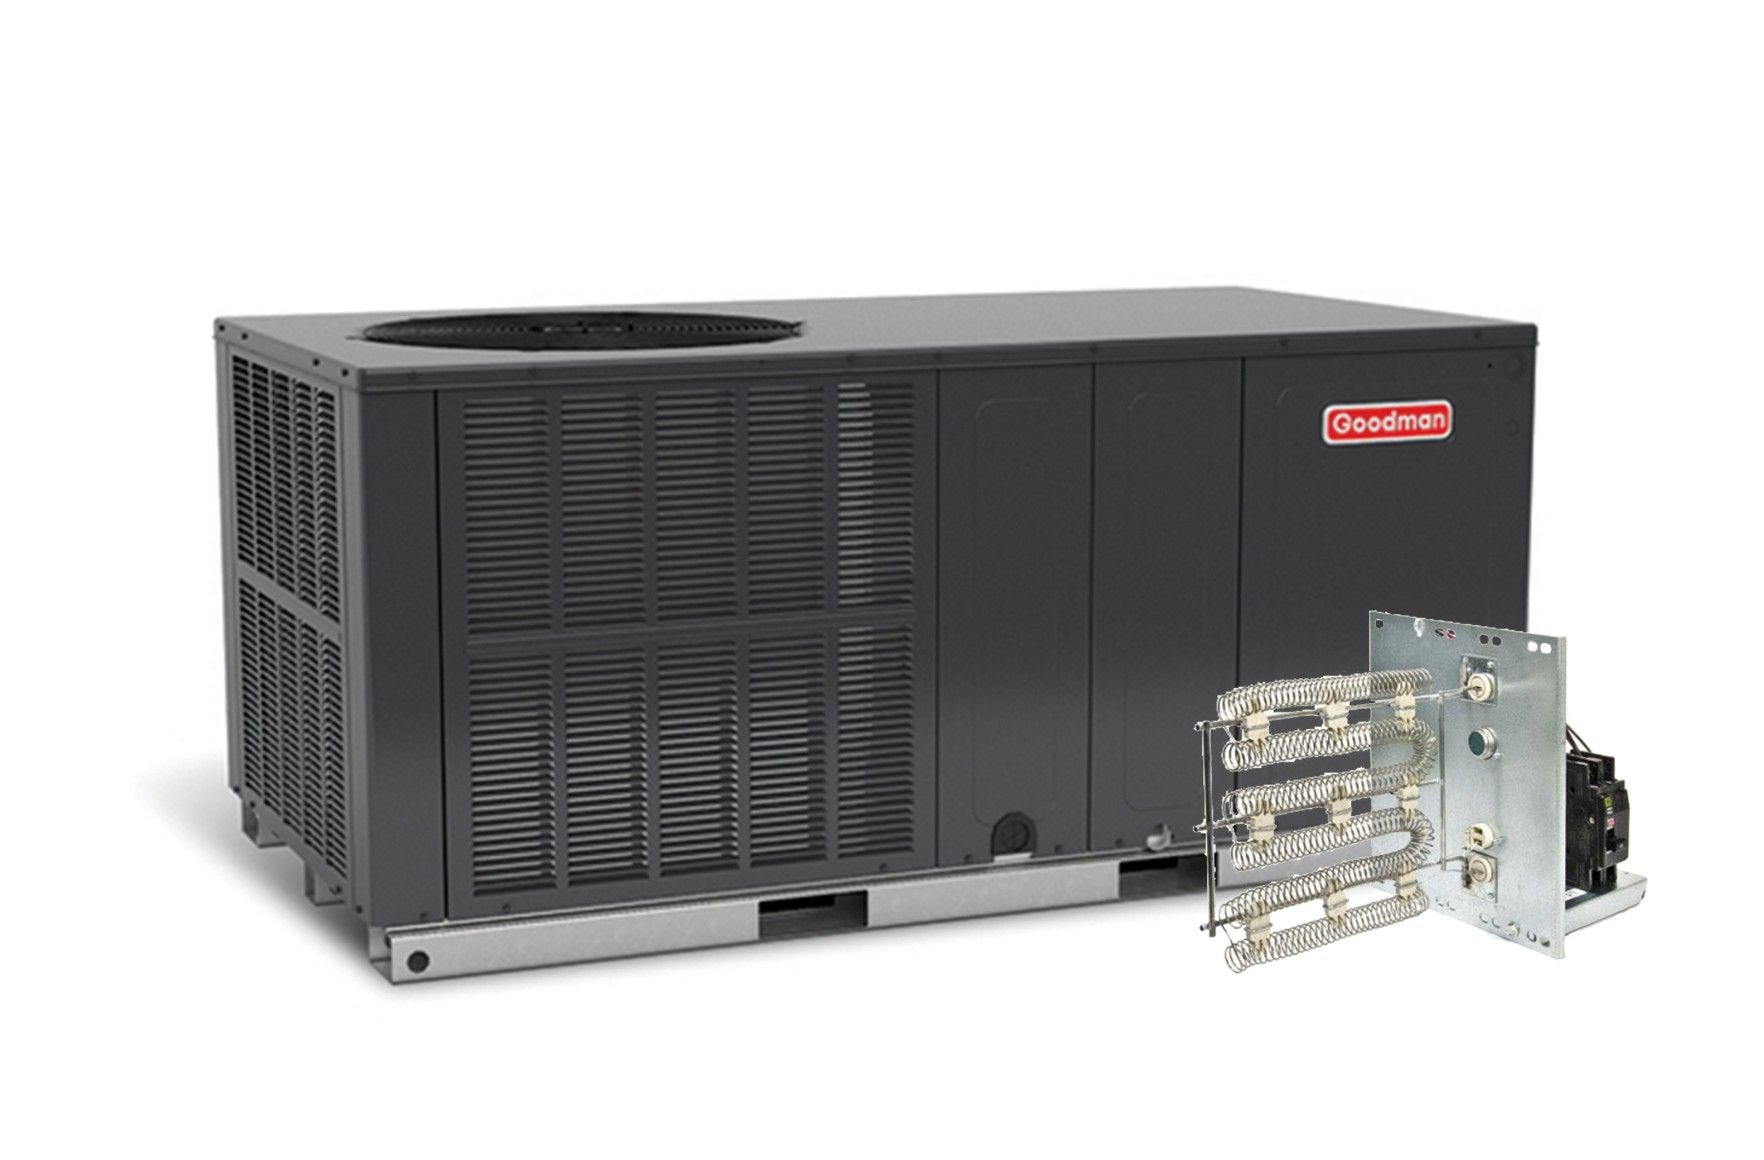 Goodman 2.0 Ton 16 SEER Single Stage Heat Pump Package Unit